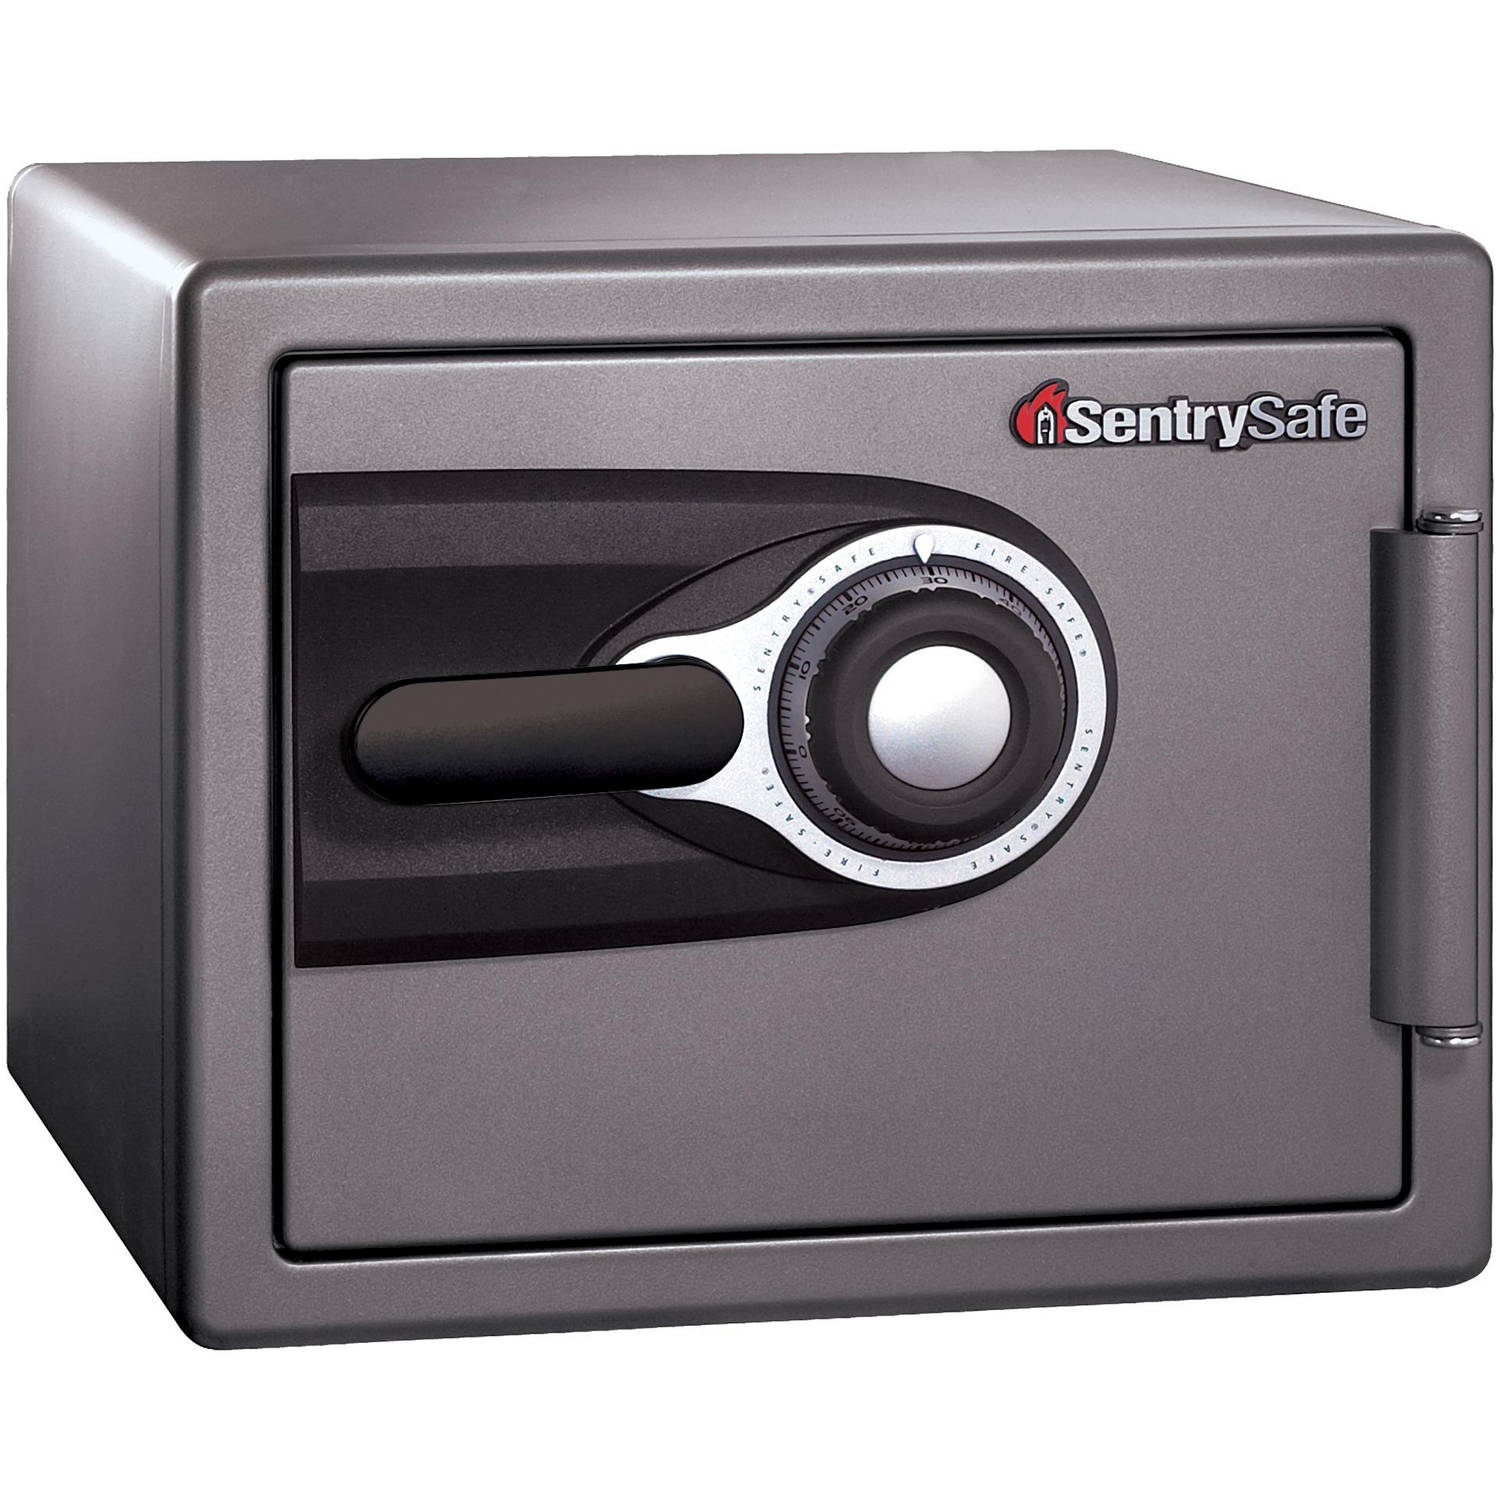 SentrySafe Fire-Safe Combination Lock Safe